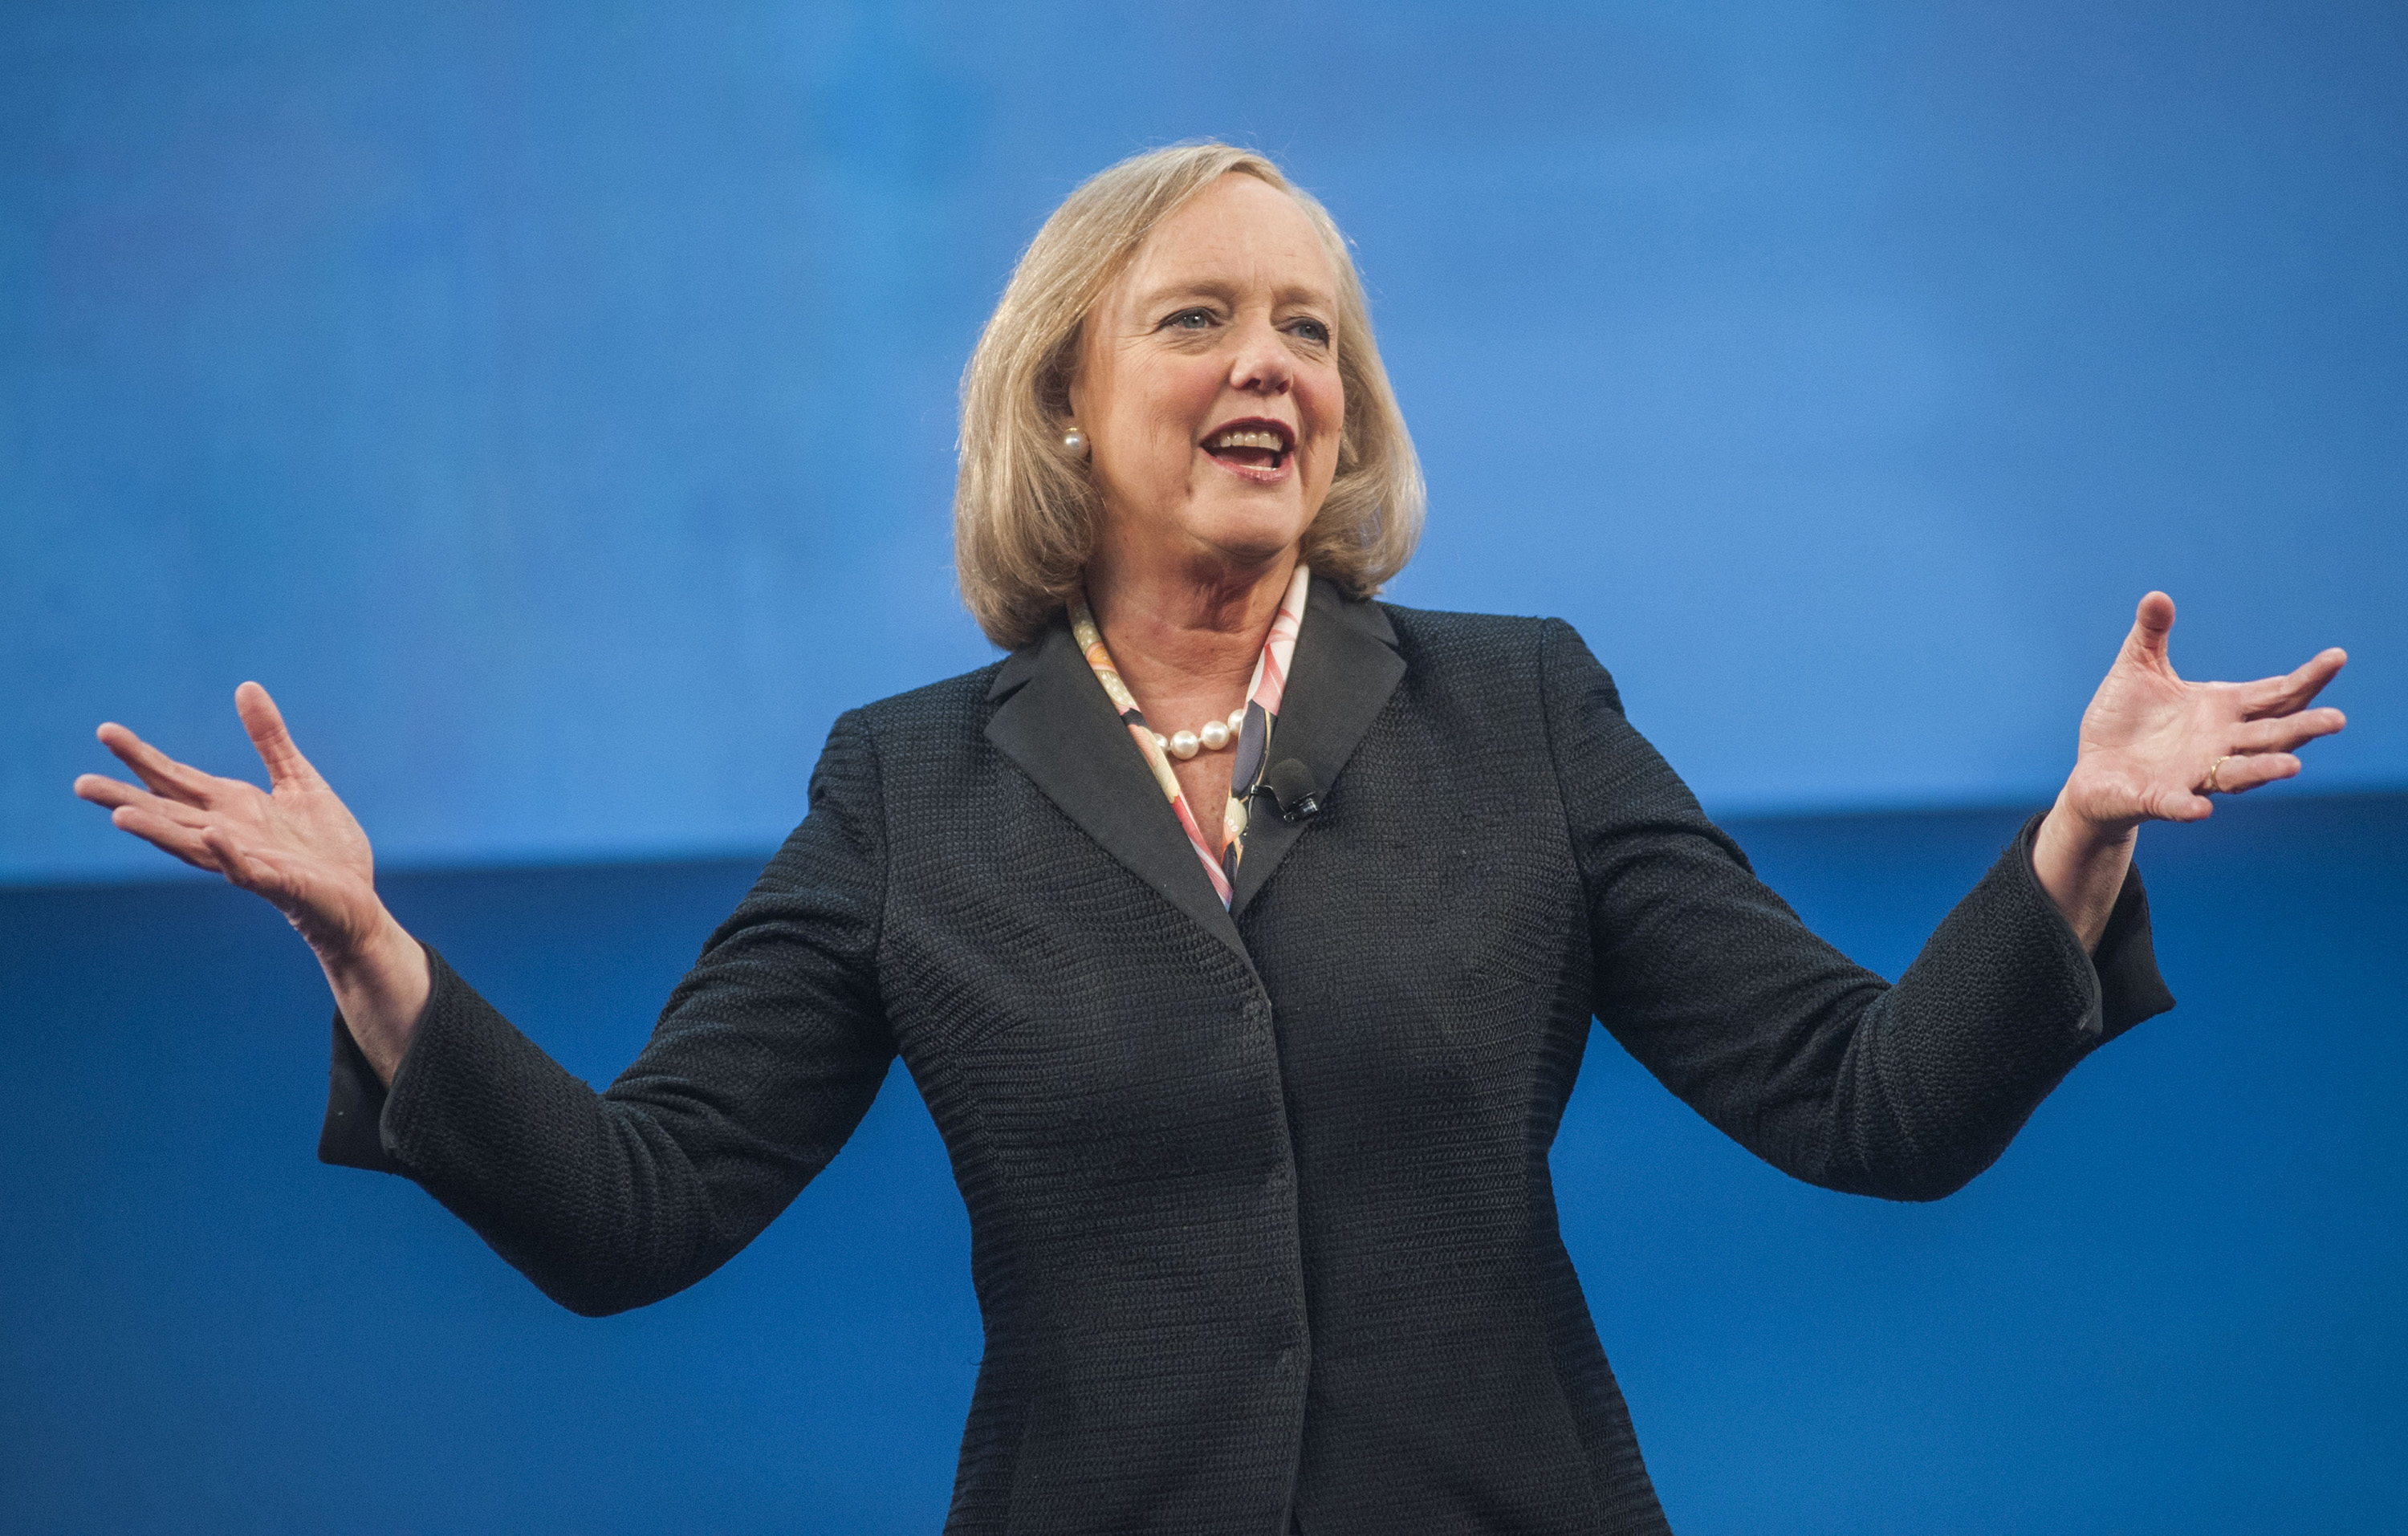 Hewlett-Packard Chief Executive Officer Meg Whitman Delivers Keynote Speech At The HP Discover Conference